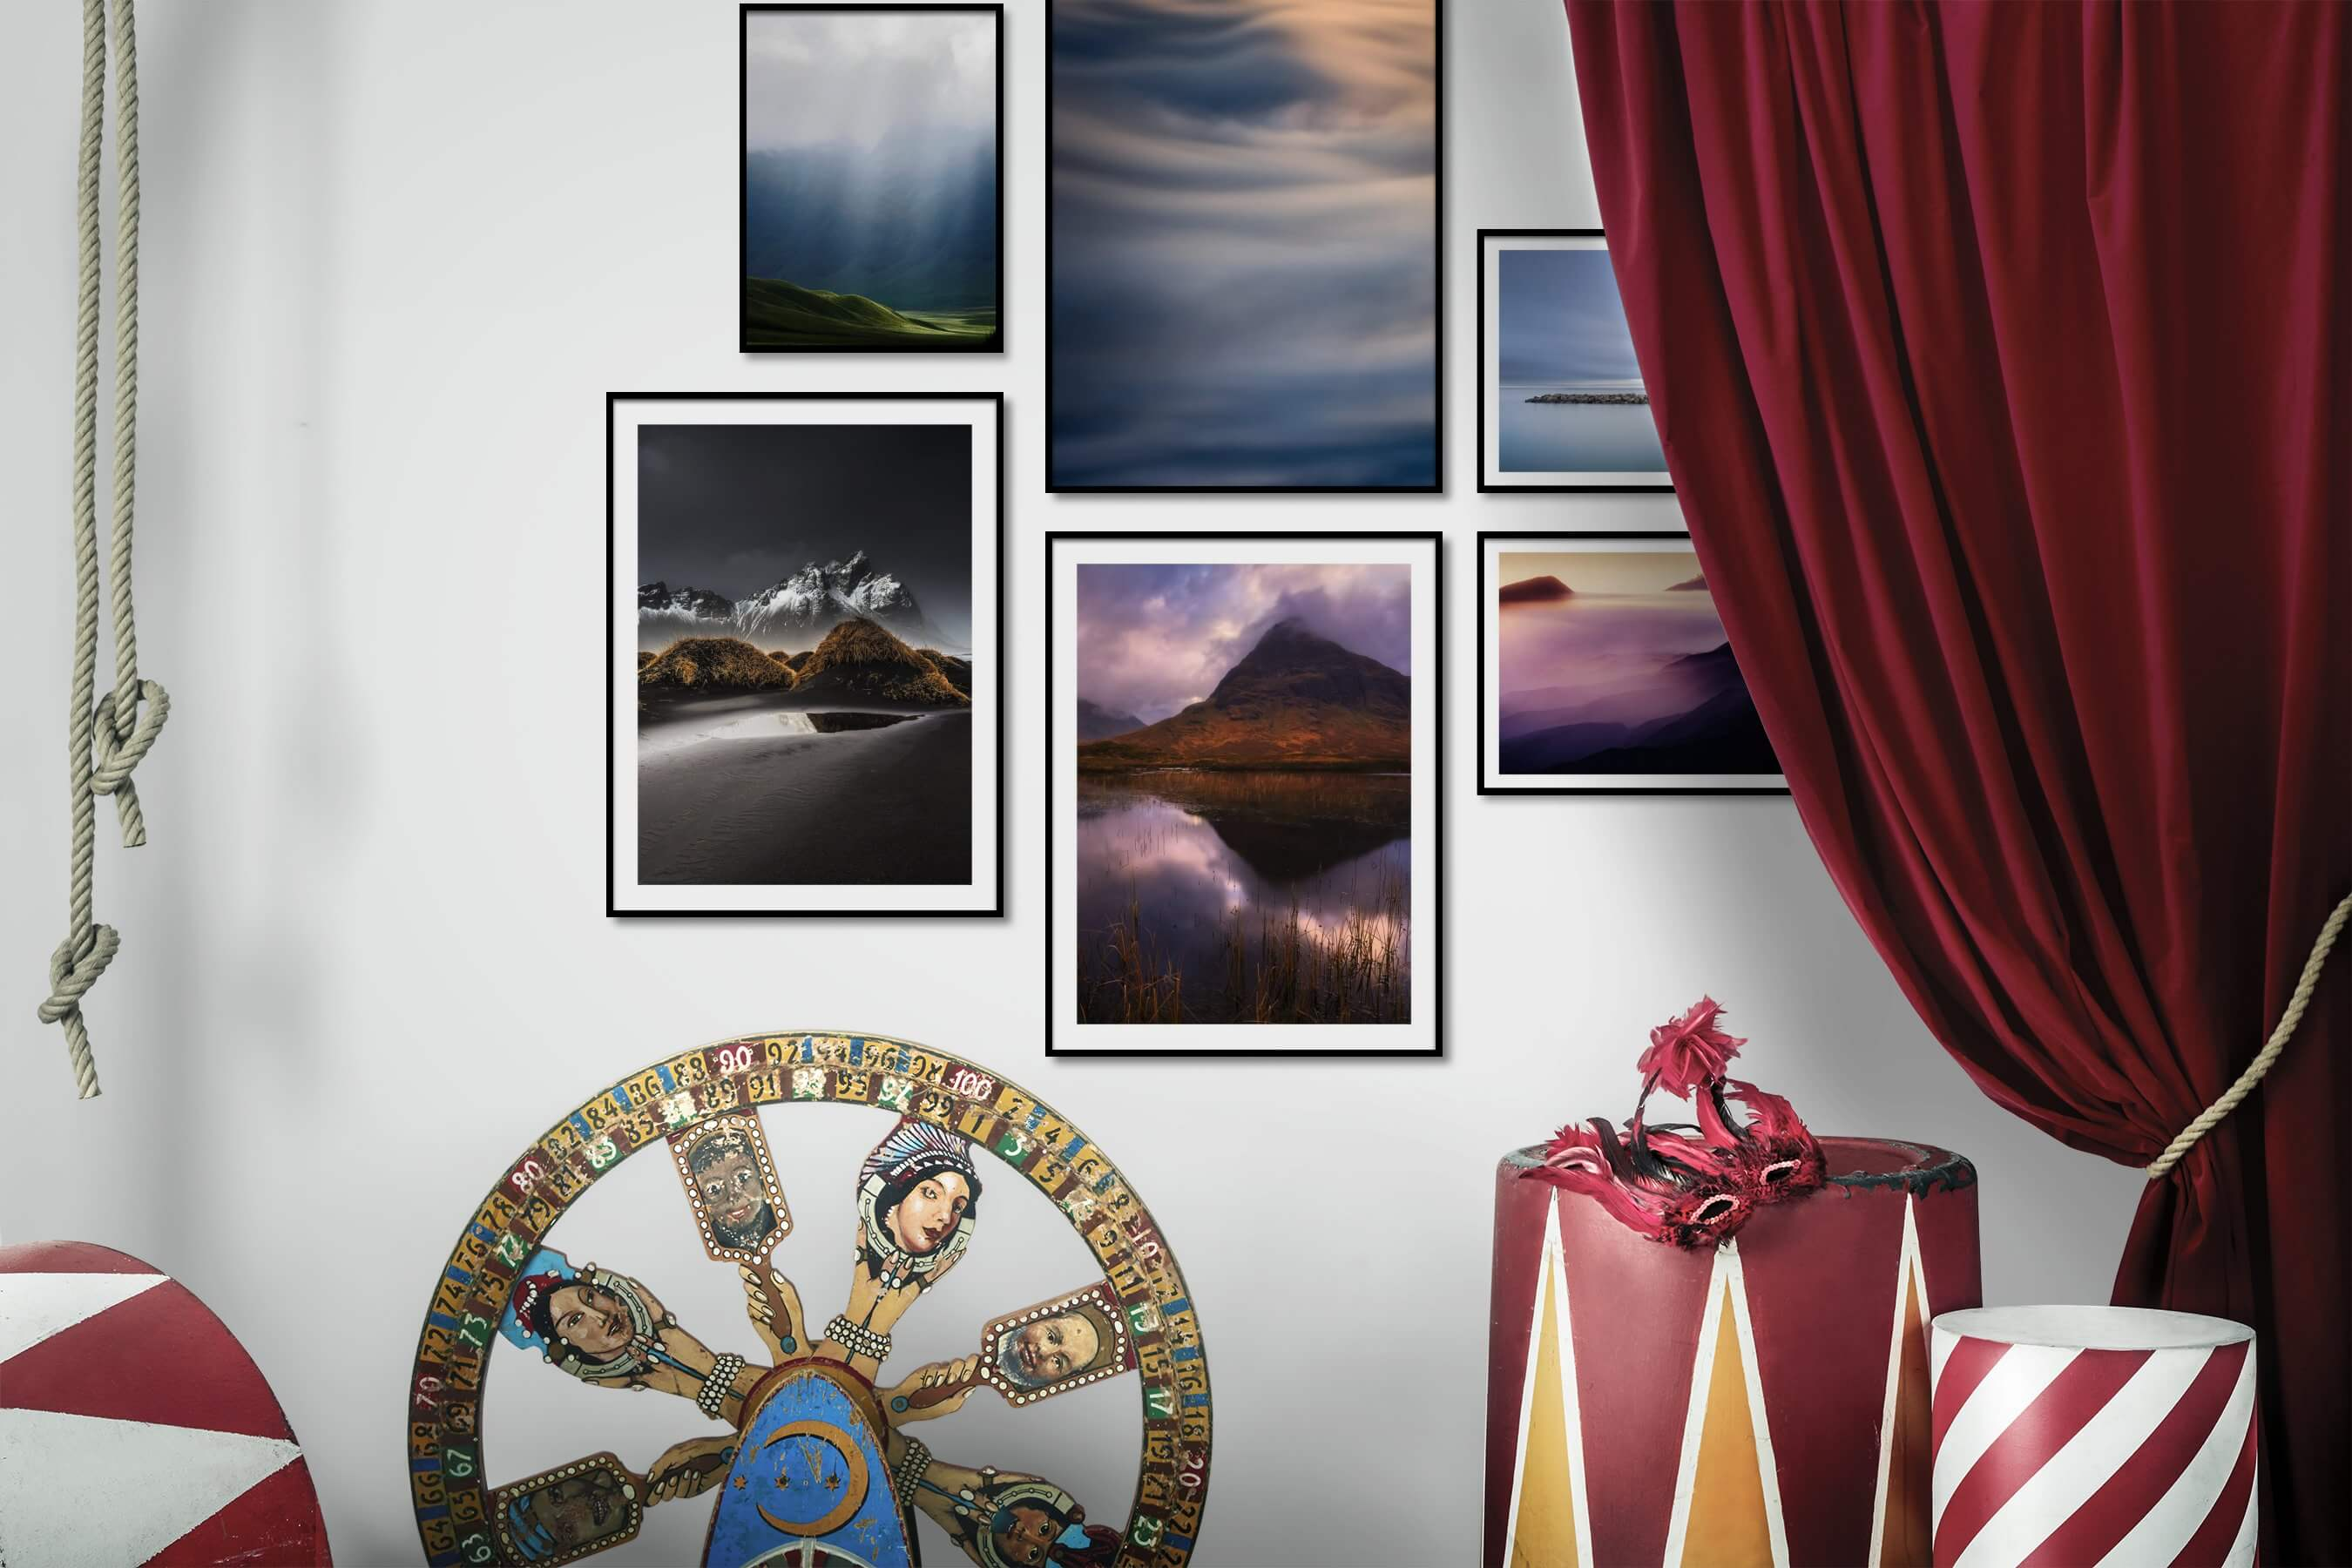 Gallery wall idea with six framed pictures arranged on a wall depicting Nature, For the Minimalist, Mindfulness, and Beach & Water